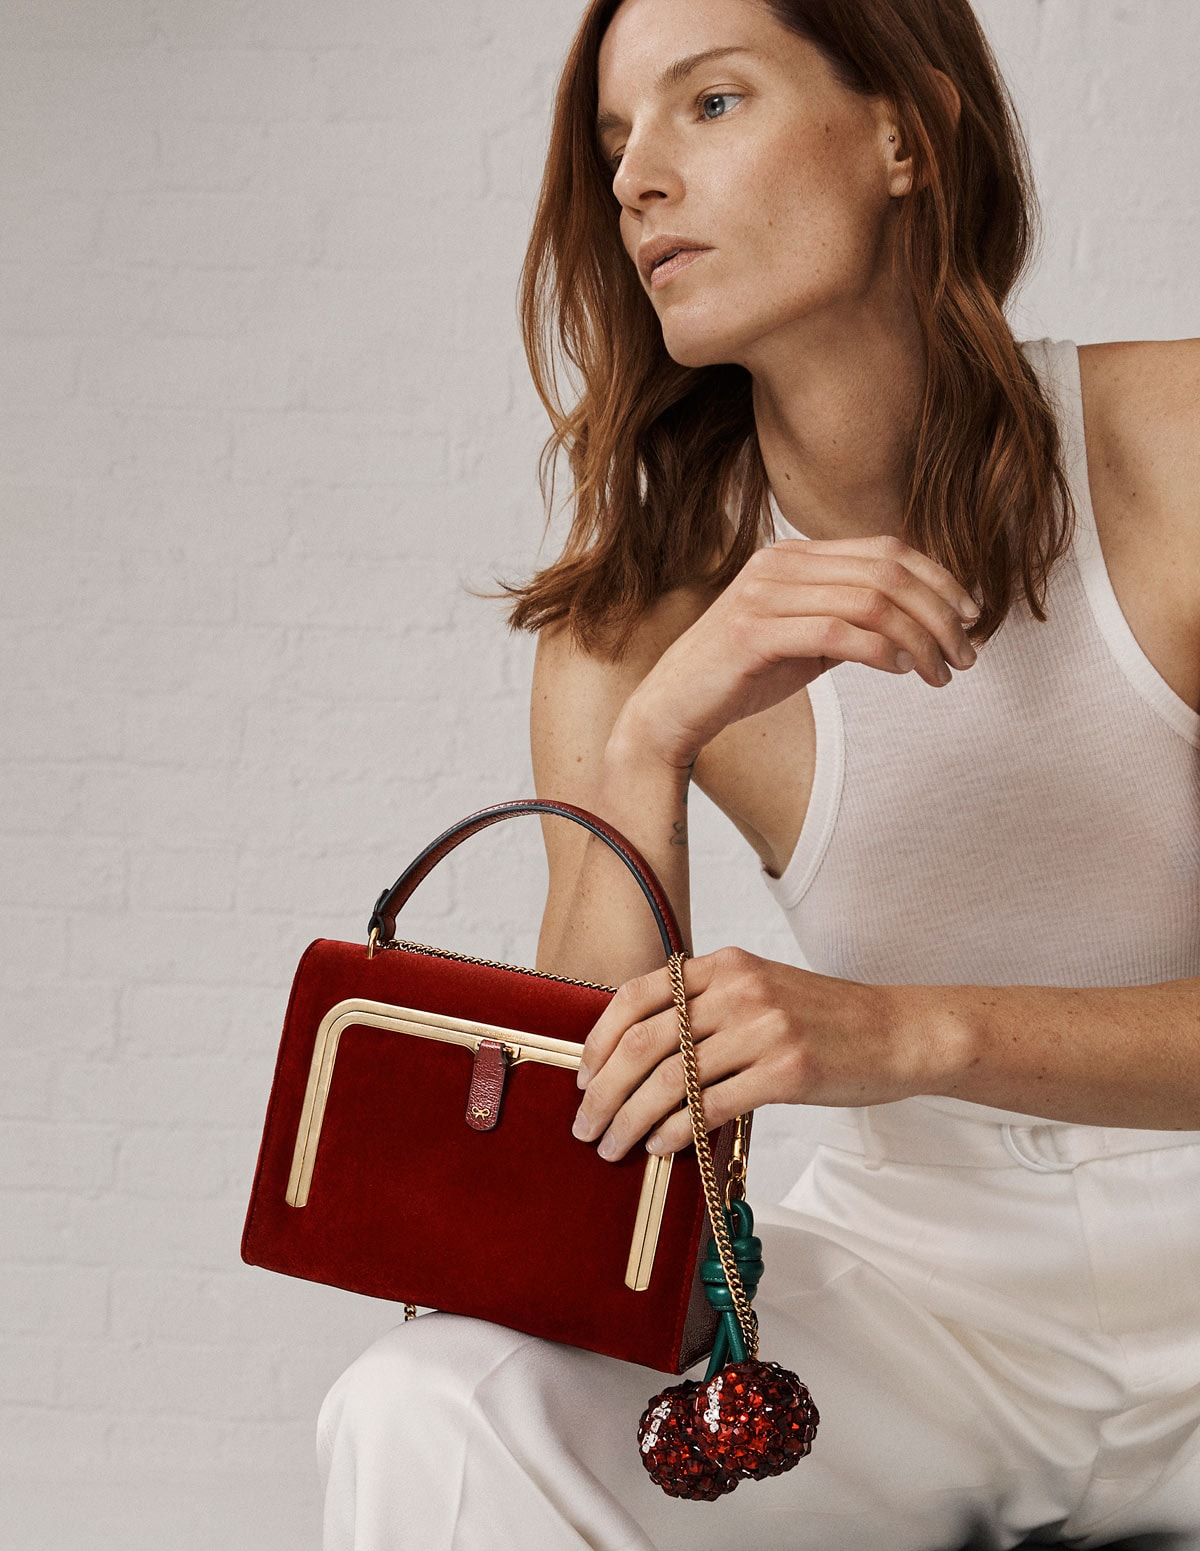 Anya Hindmarch continues consumer focused LFW